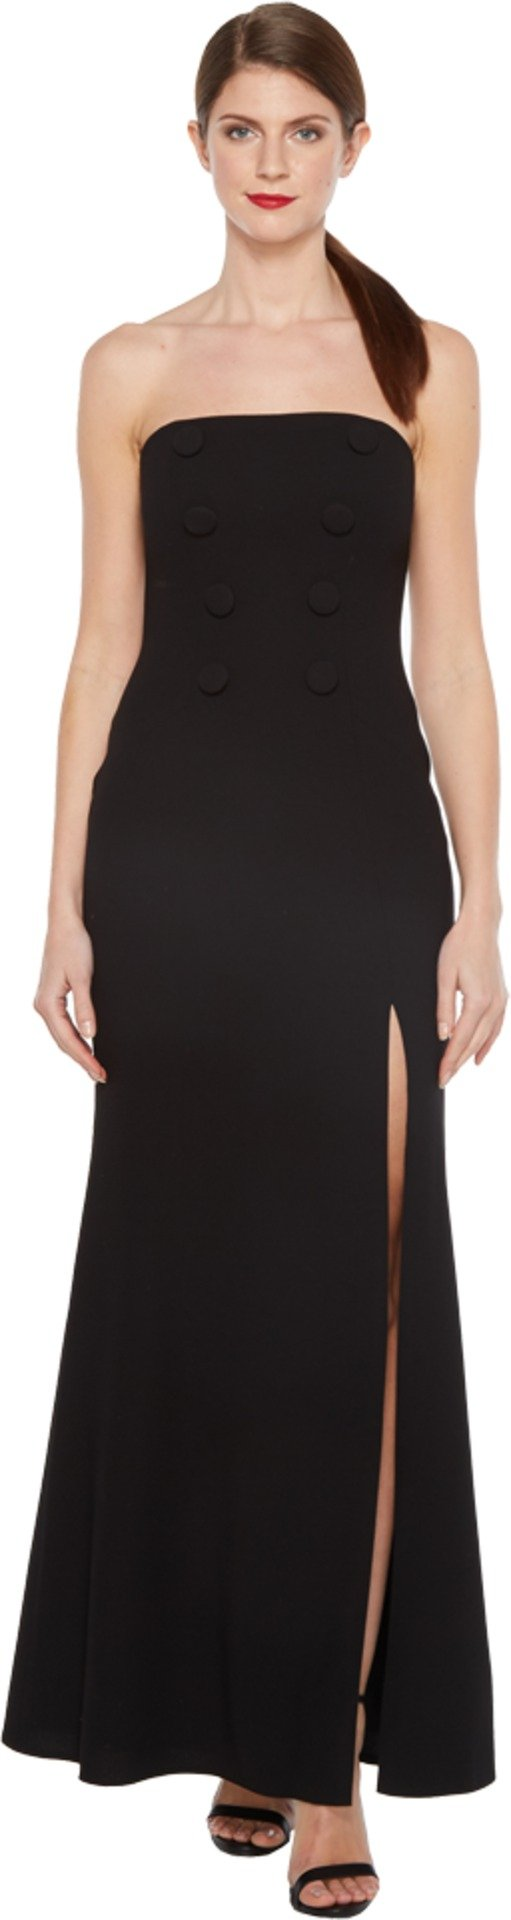 JILL JILL STUART Women's Strapless Hourglass Gown with Center Buttons, Front Slit and Side Pockets Black 14 by Jill Jill Stuart